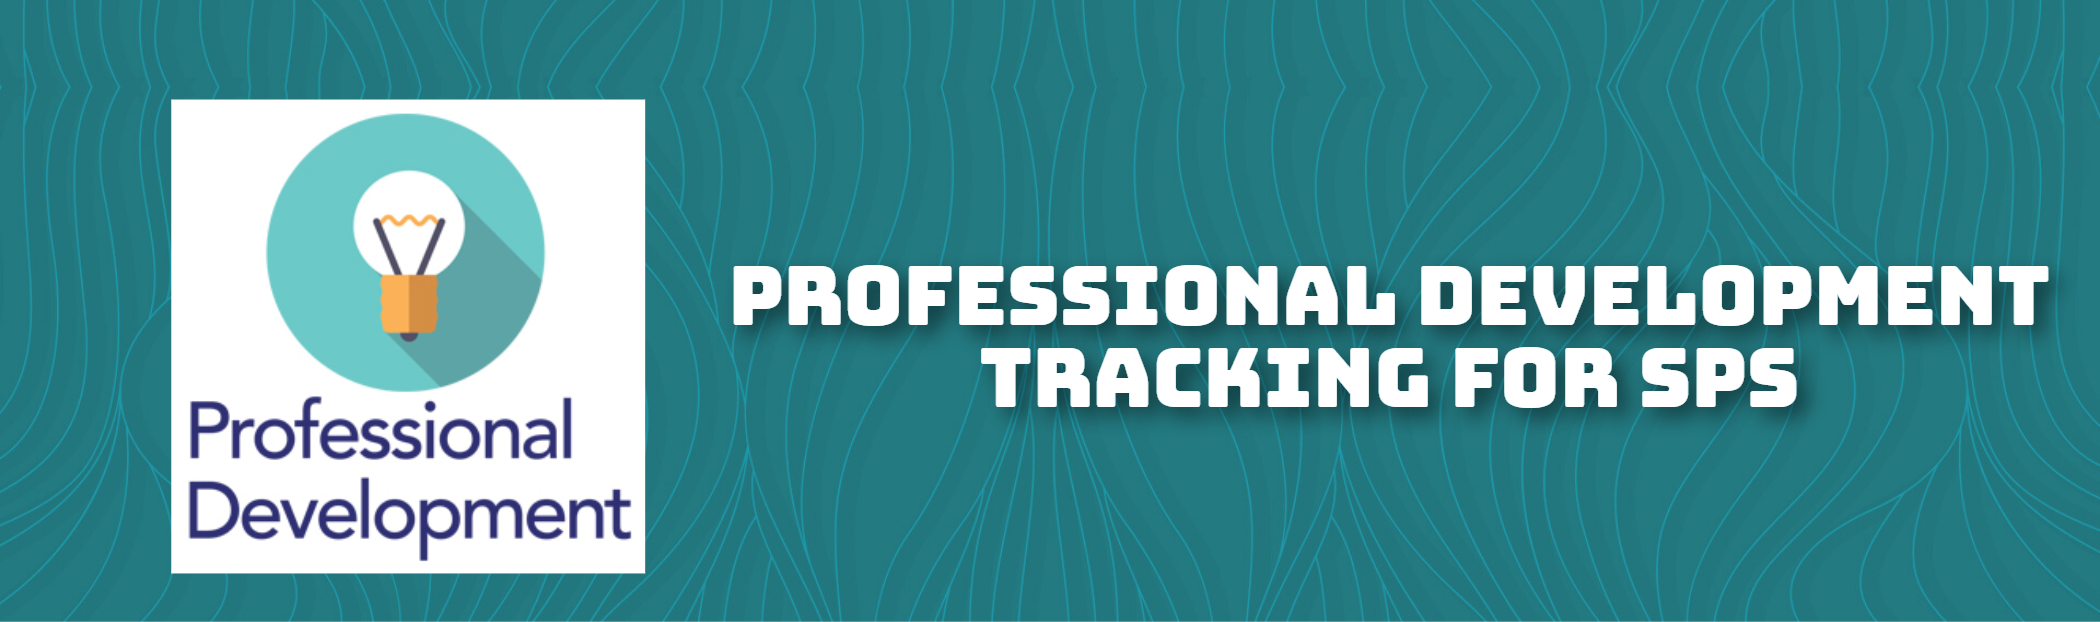 Professional Development Tracking For SPS